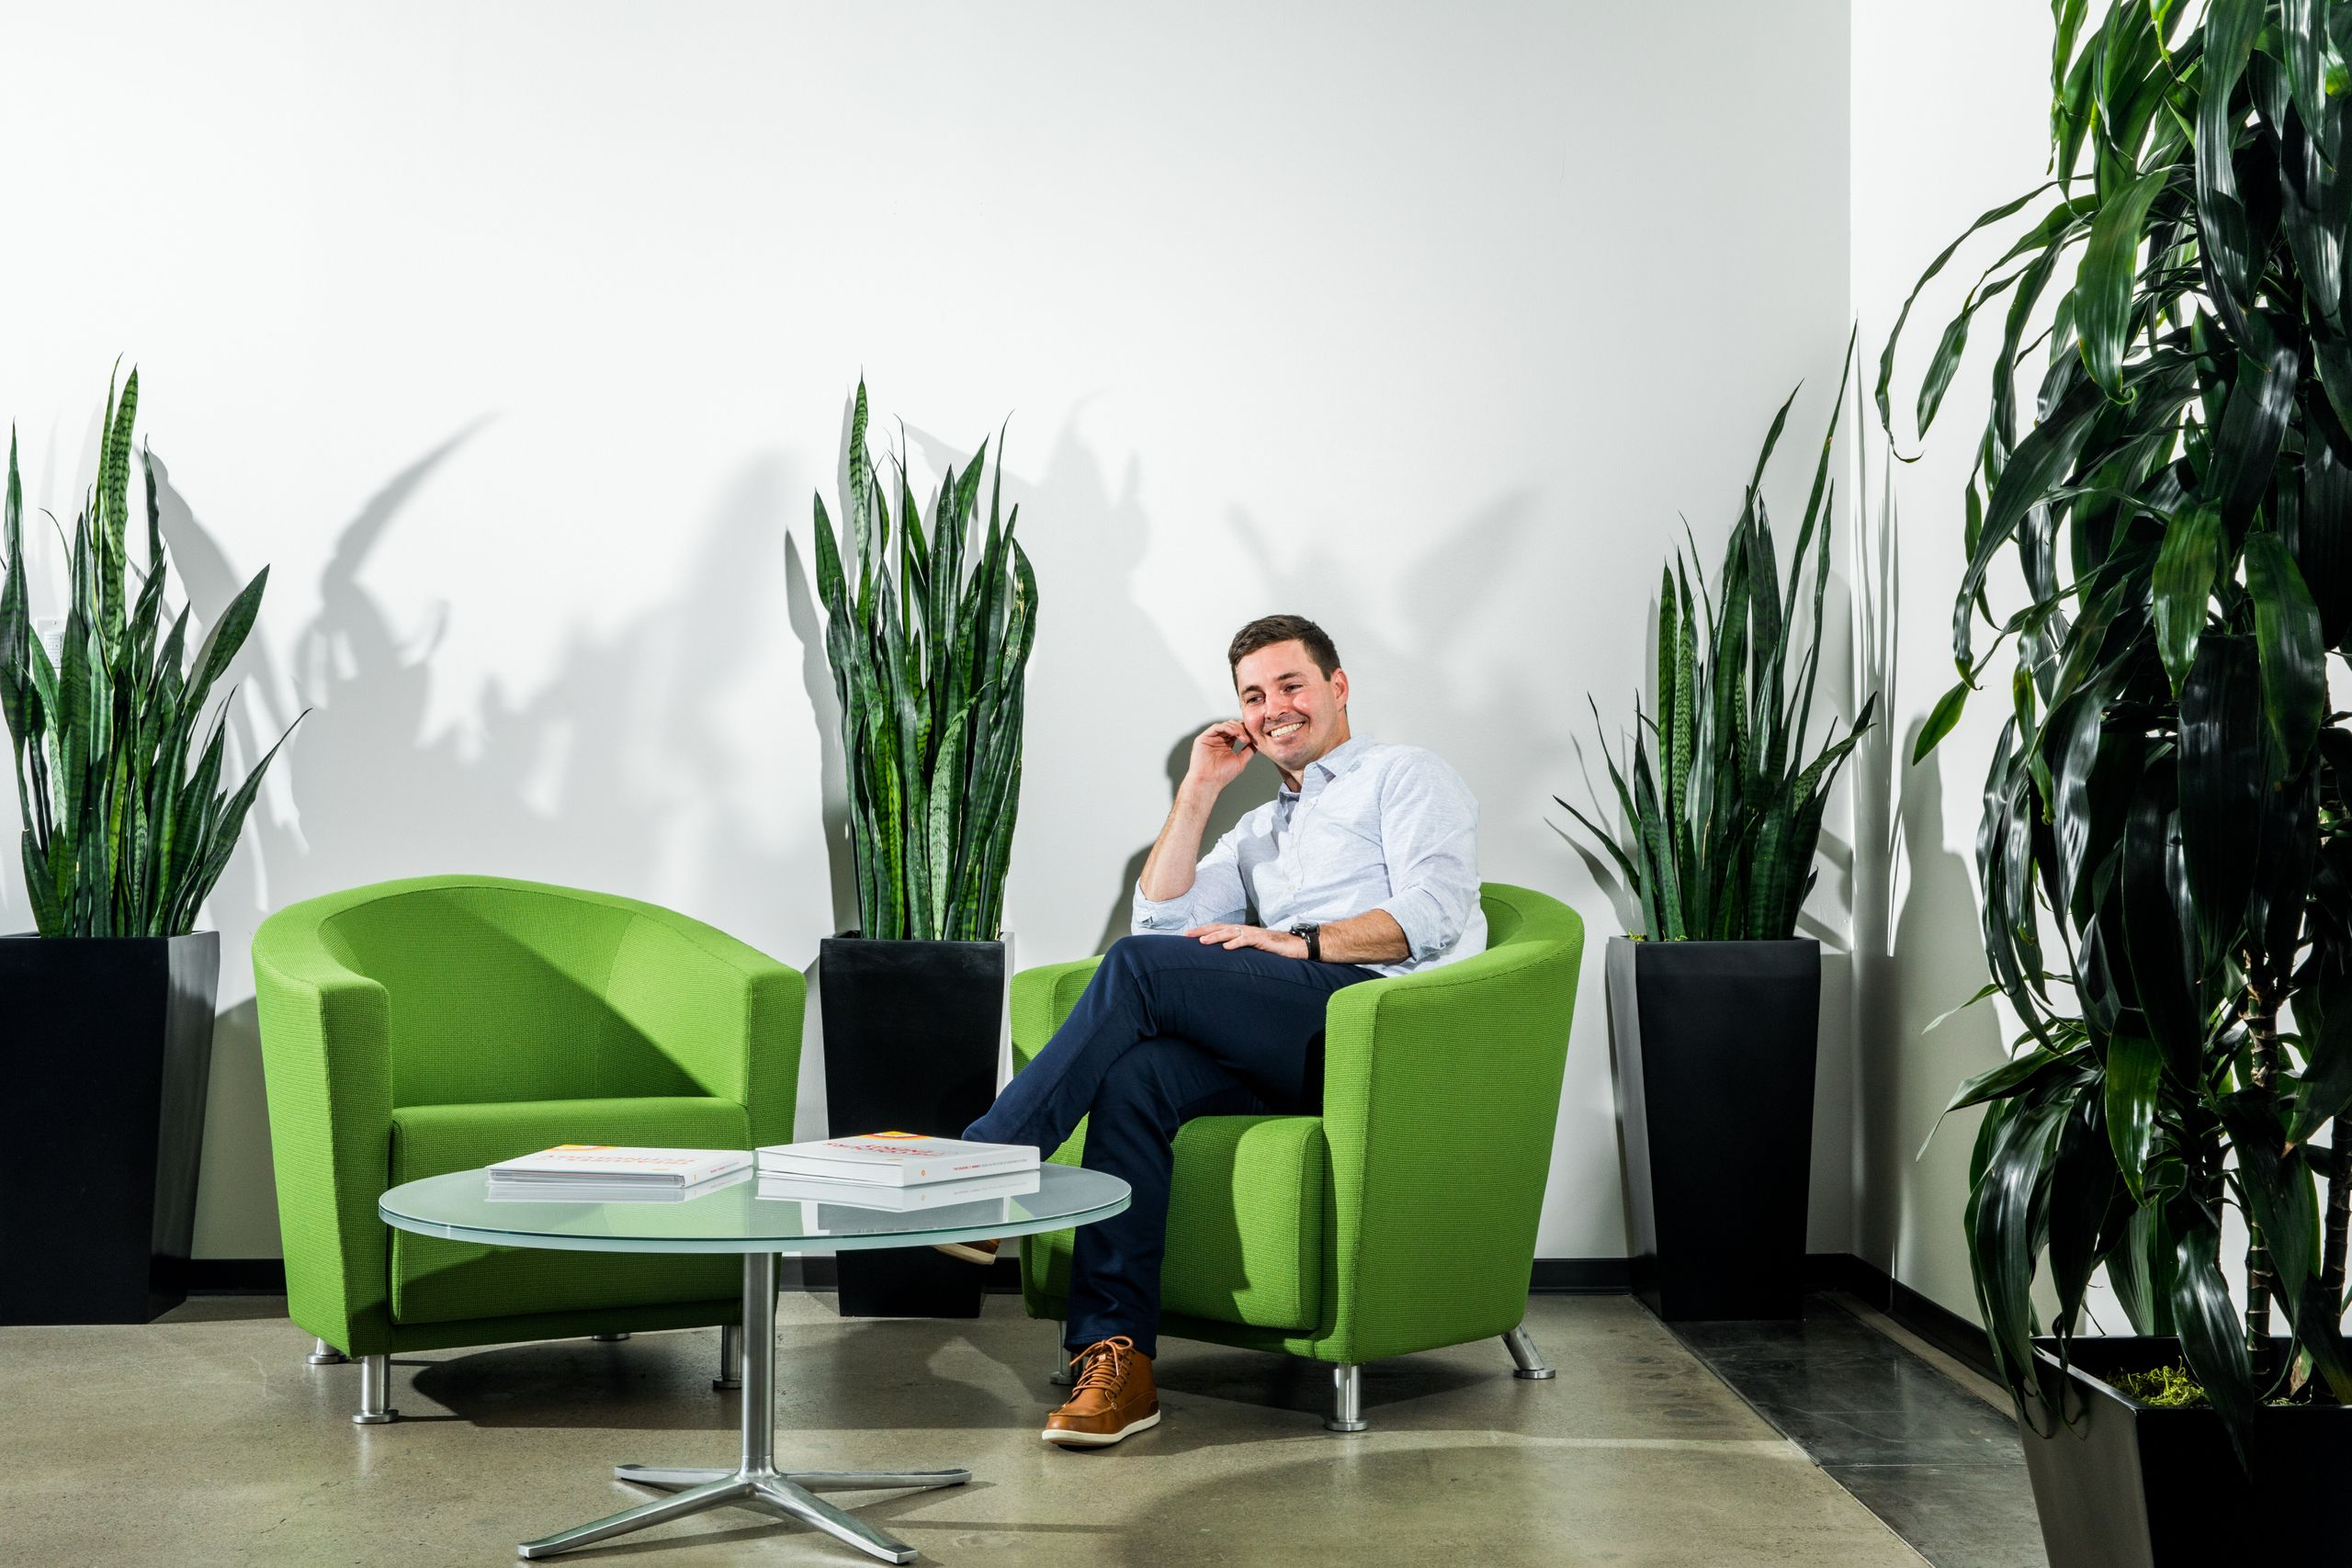 Ryan Hanley, GM of Energy Platform poses for a portrait at the Royal Dutch Shell offices in San Francisco.